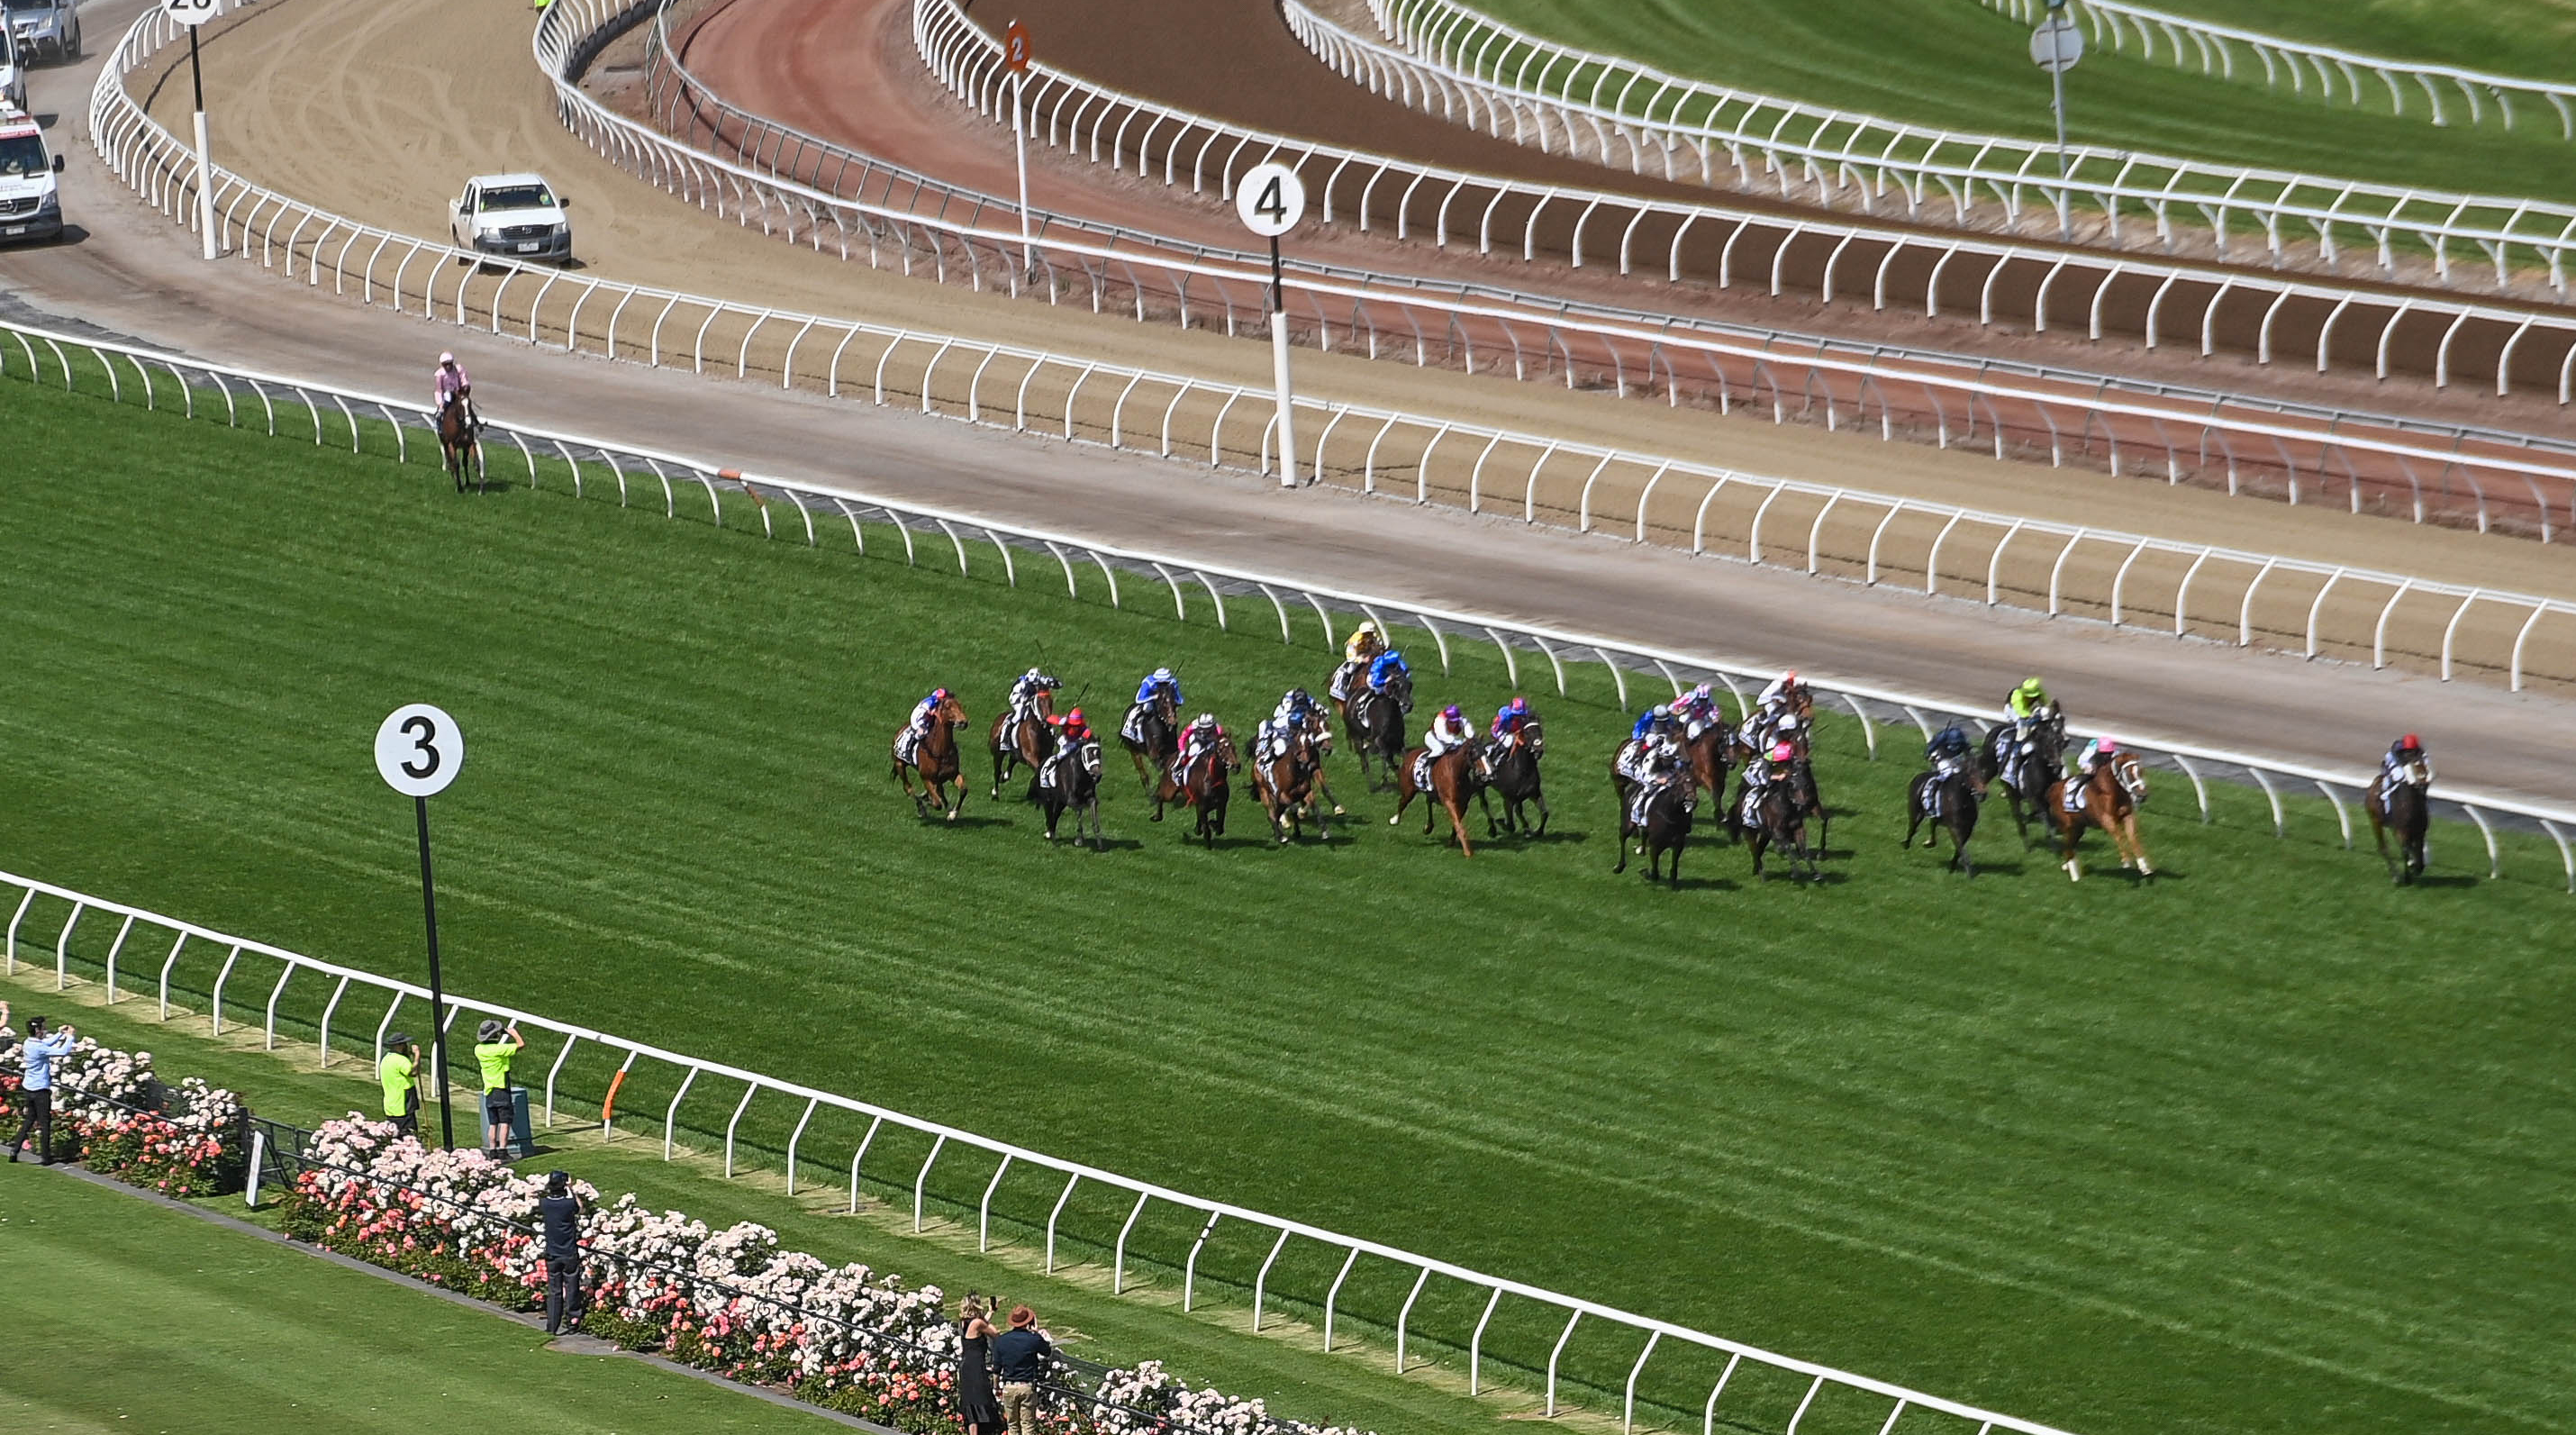 Jockey in court to fight suspension handed out for lying about a COVID-19 party